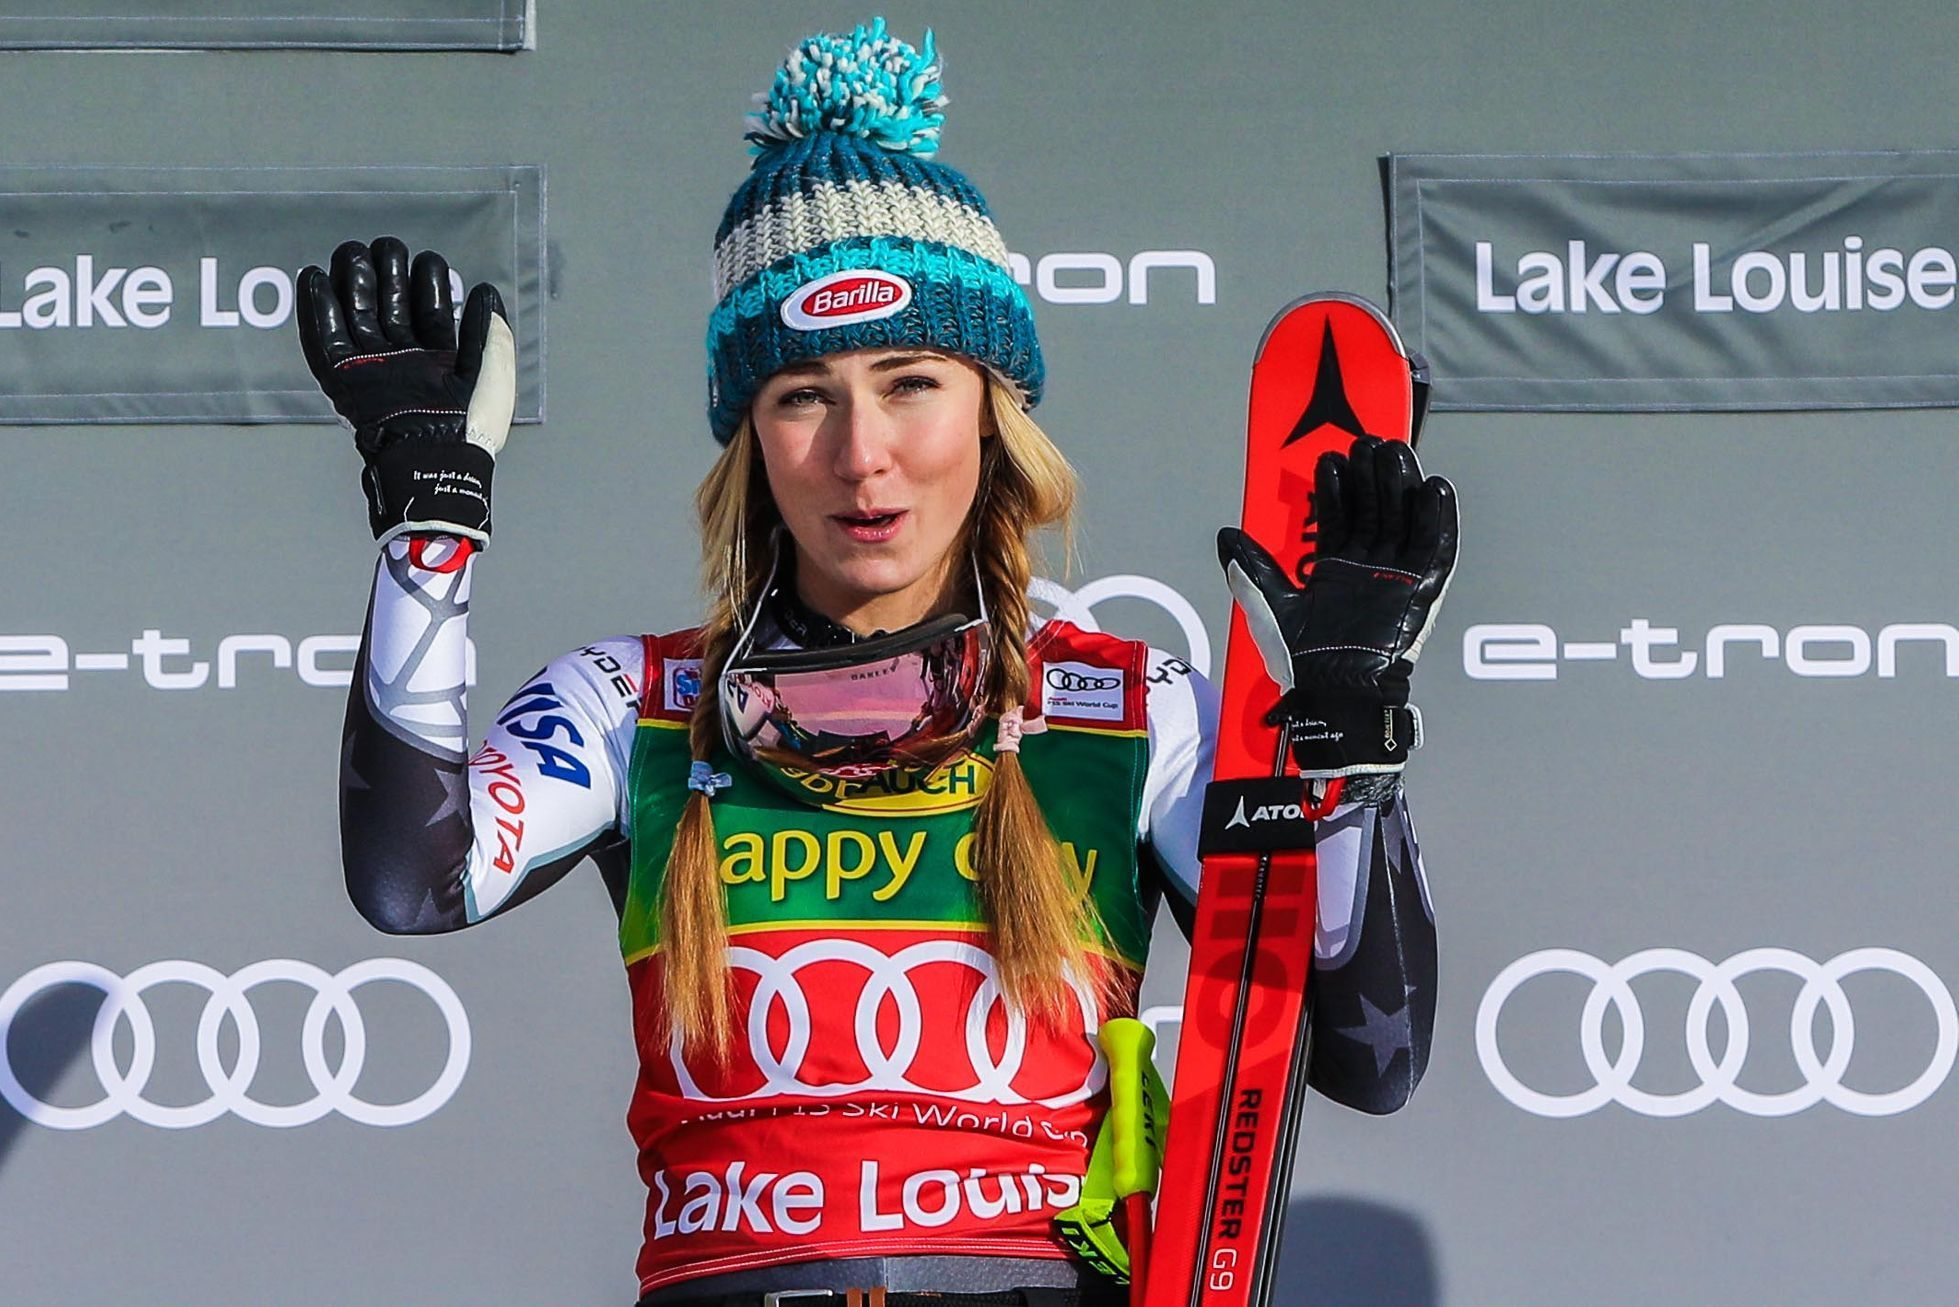 Mikaela Shiffrinová v Lake Louise 2018